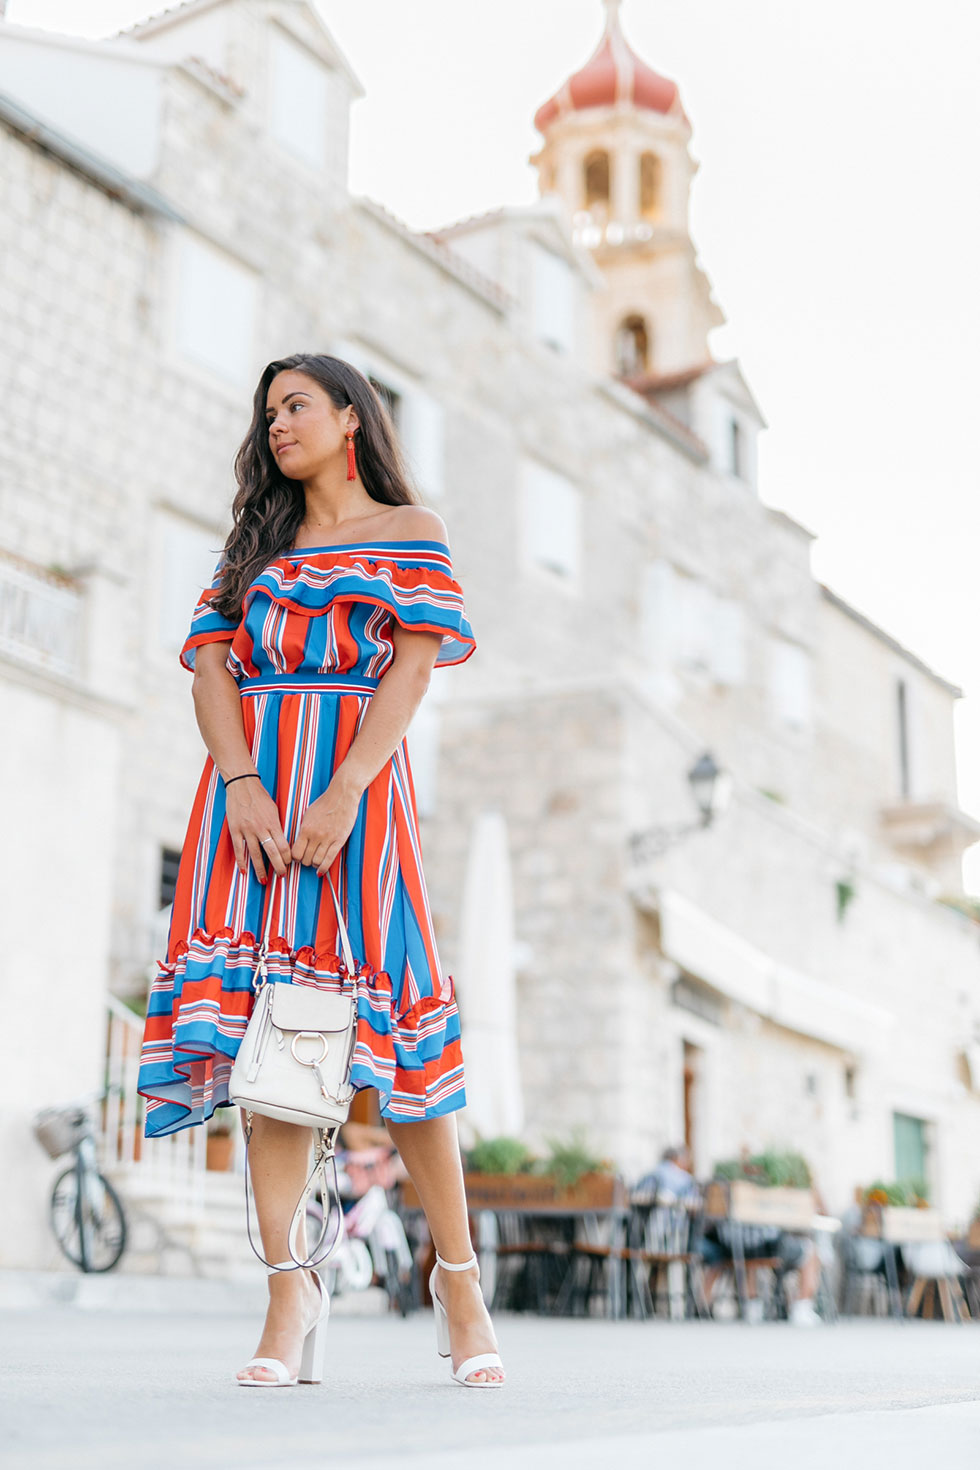 Red-blue-white-Stripe-Off-the-Shoulder-Dress-croatia-europe-summer-travel-outfit1-3.jpg